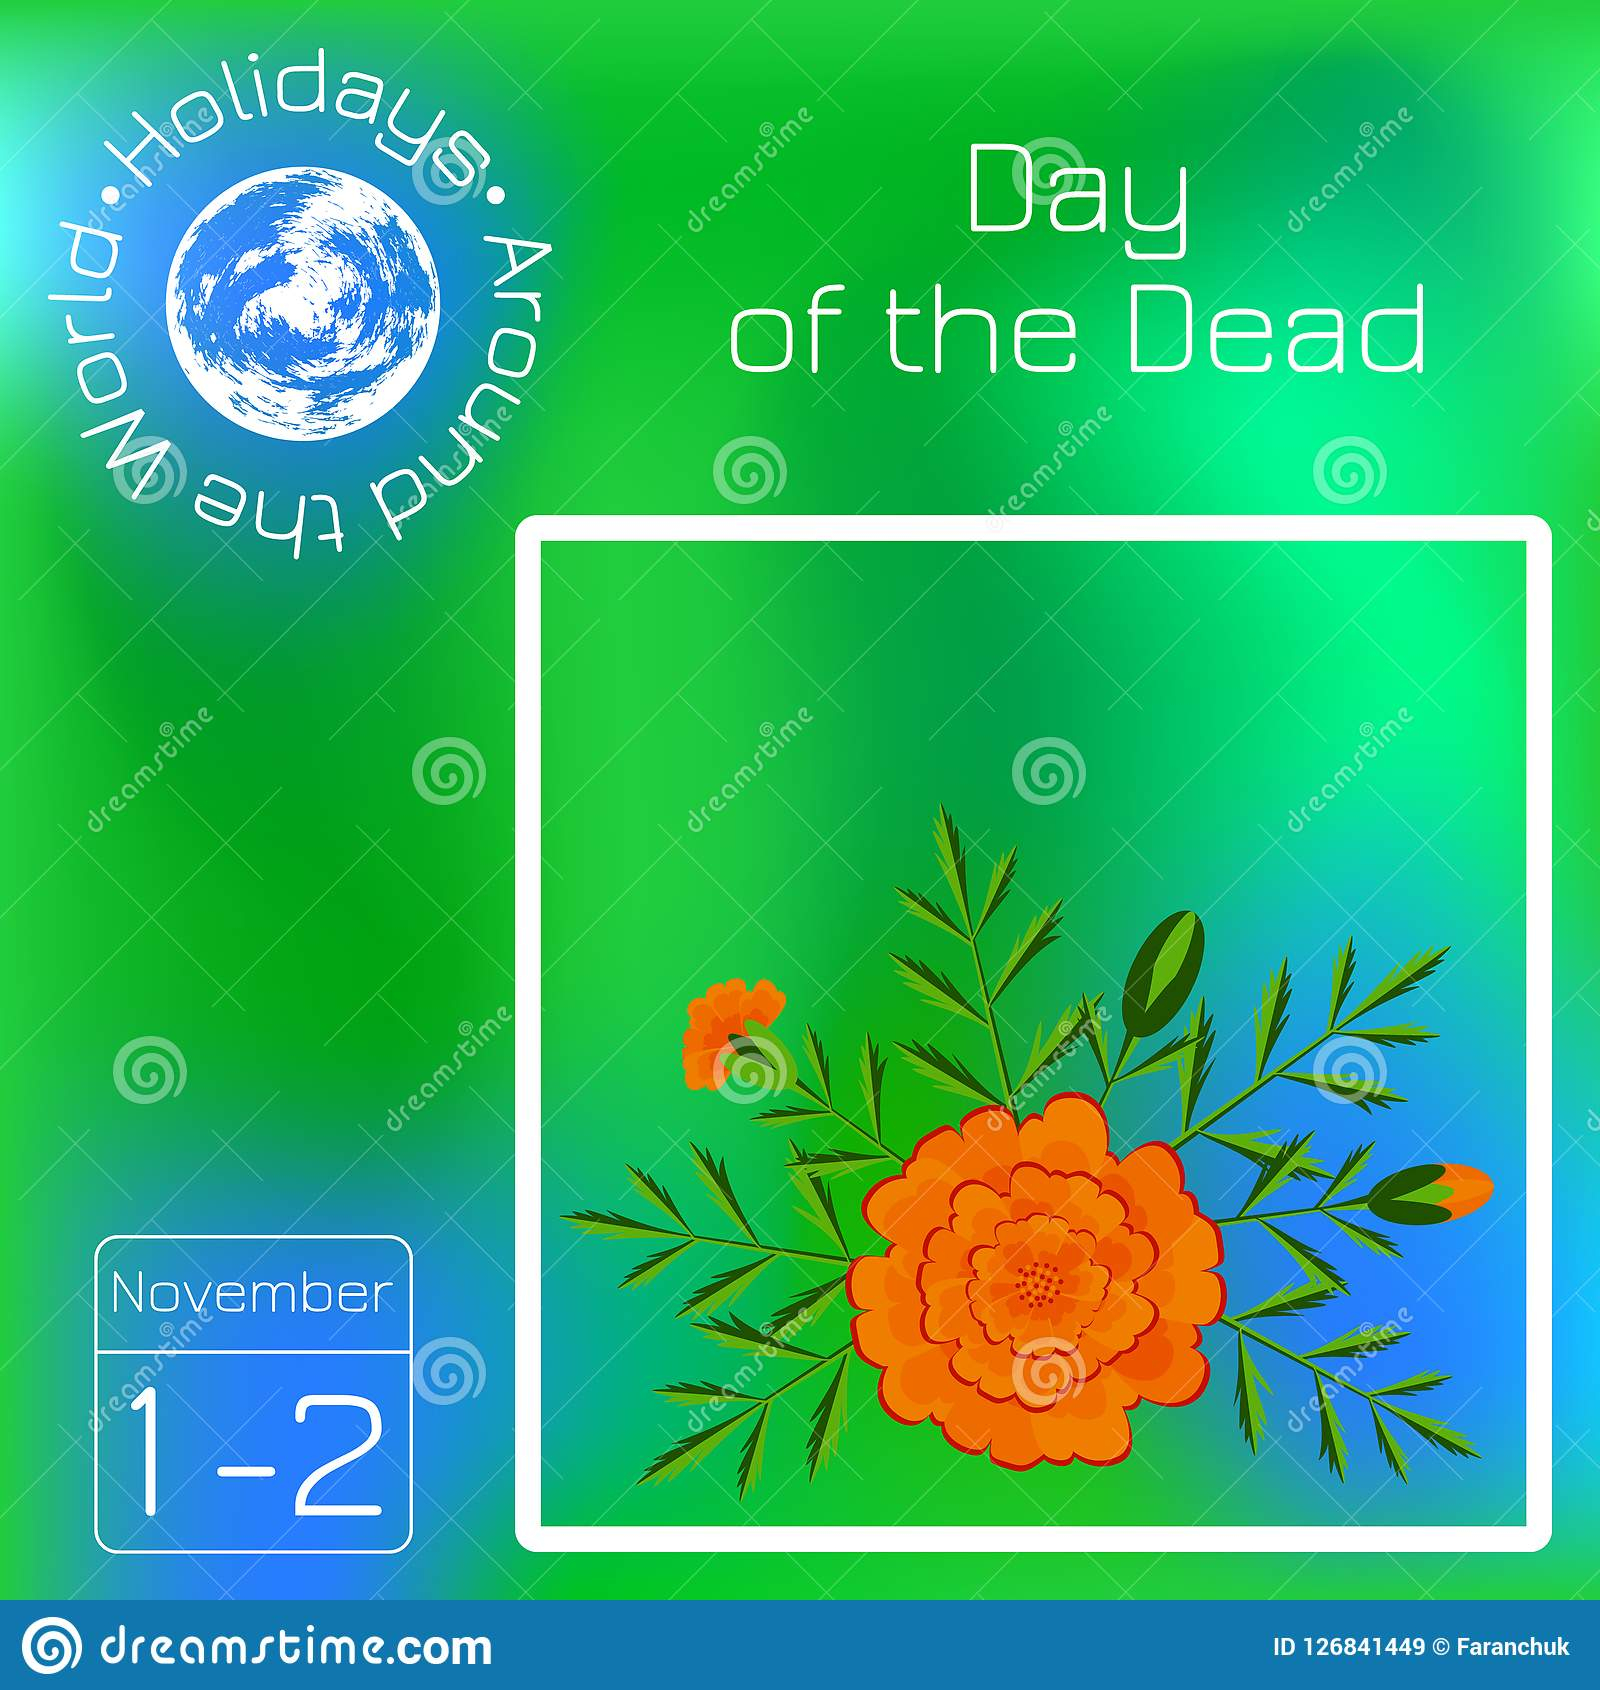 Day Of The Dead. Mexican Festival. Calendar. Holidays In Mexican Calendars With Day Suggested Names